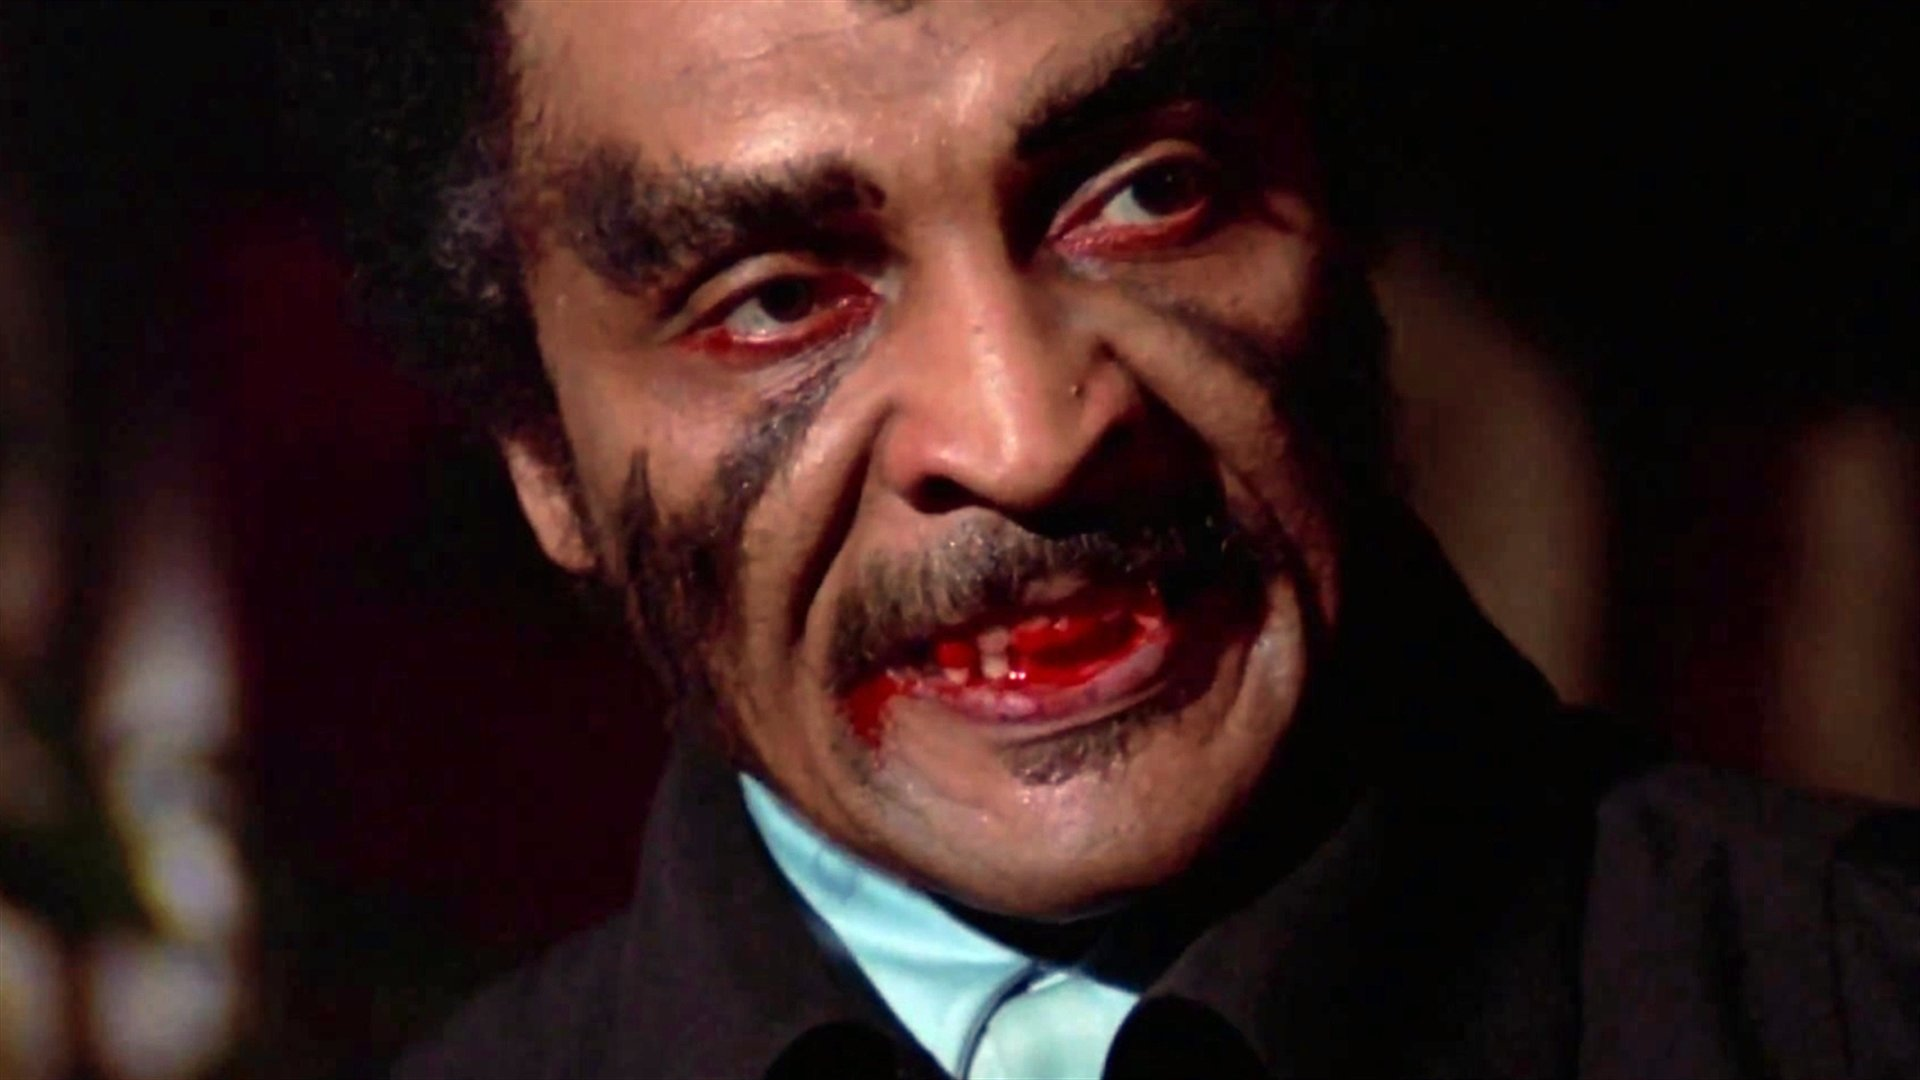 Interview with Gina Loring Daughter of Blacula Vamped 1920x1080